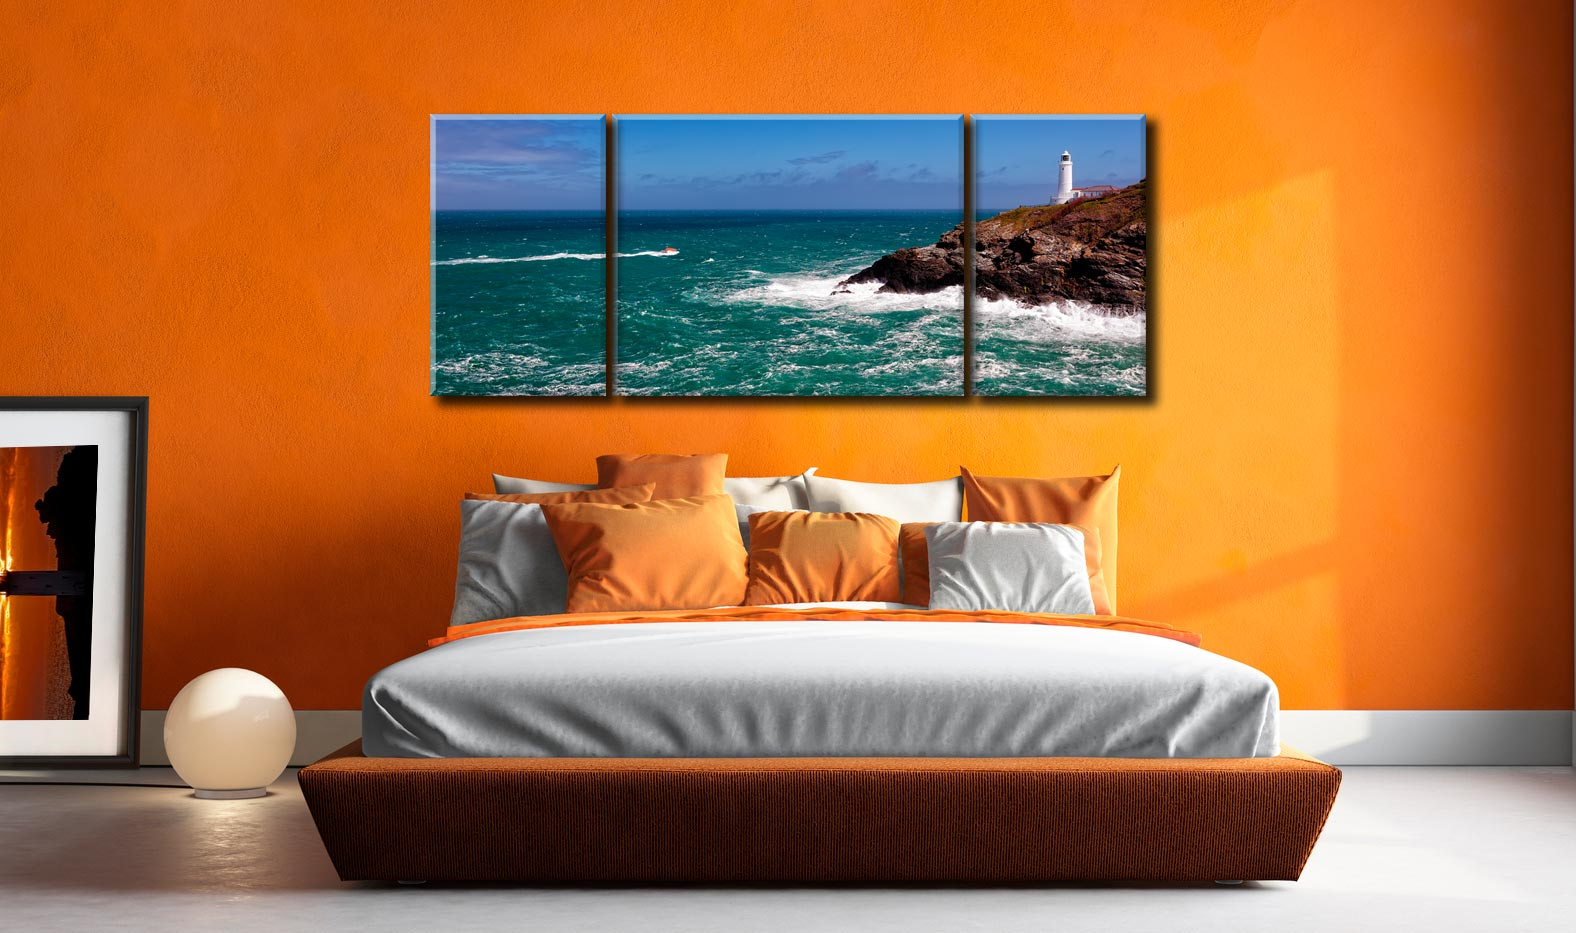 Trevose Head Lighthouse and Lifeboat - 3 Panel Wide Mid Canvas on Wall